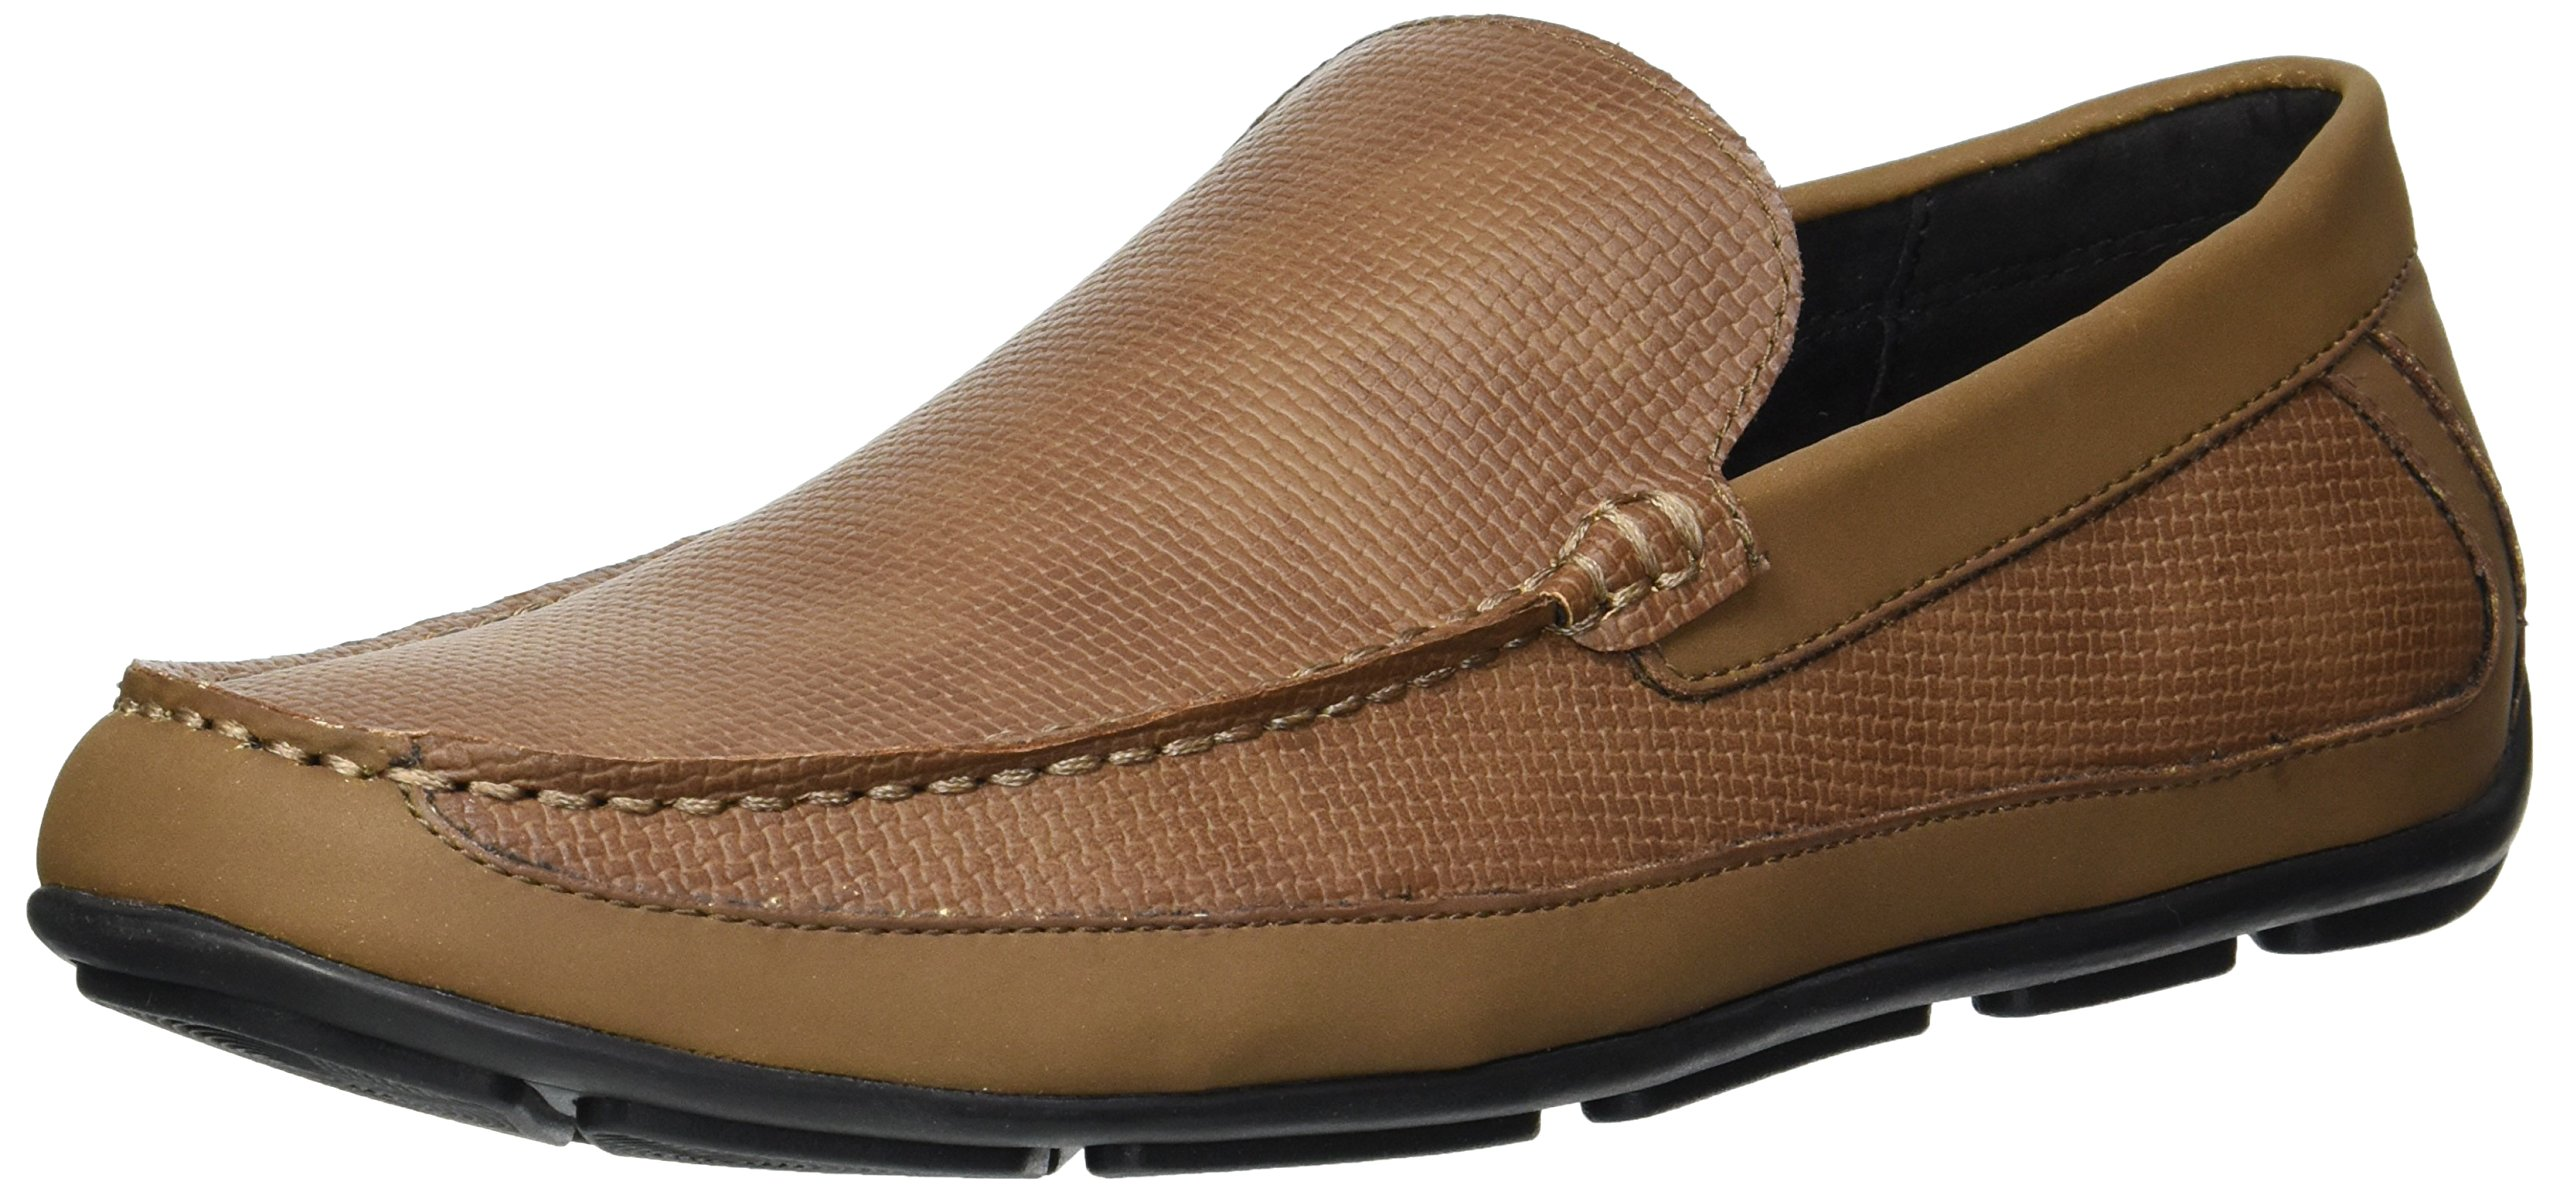 Unlisted by Kenneth Cole Men's Eckert Driver B Driving Style Loafer, Brown, 9.5 M US